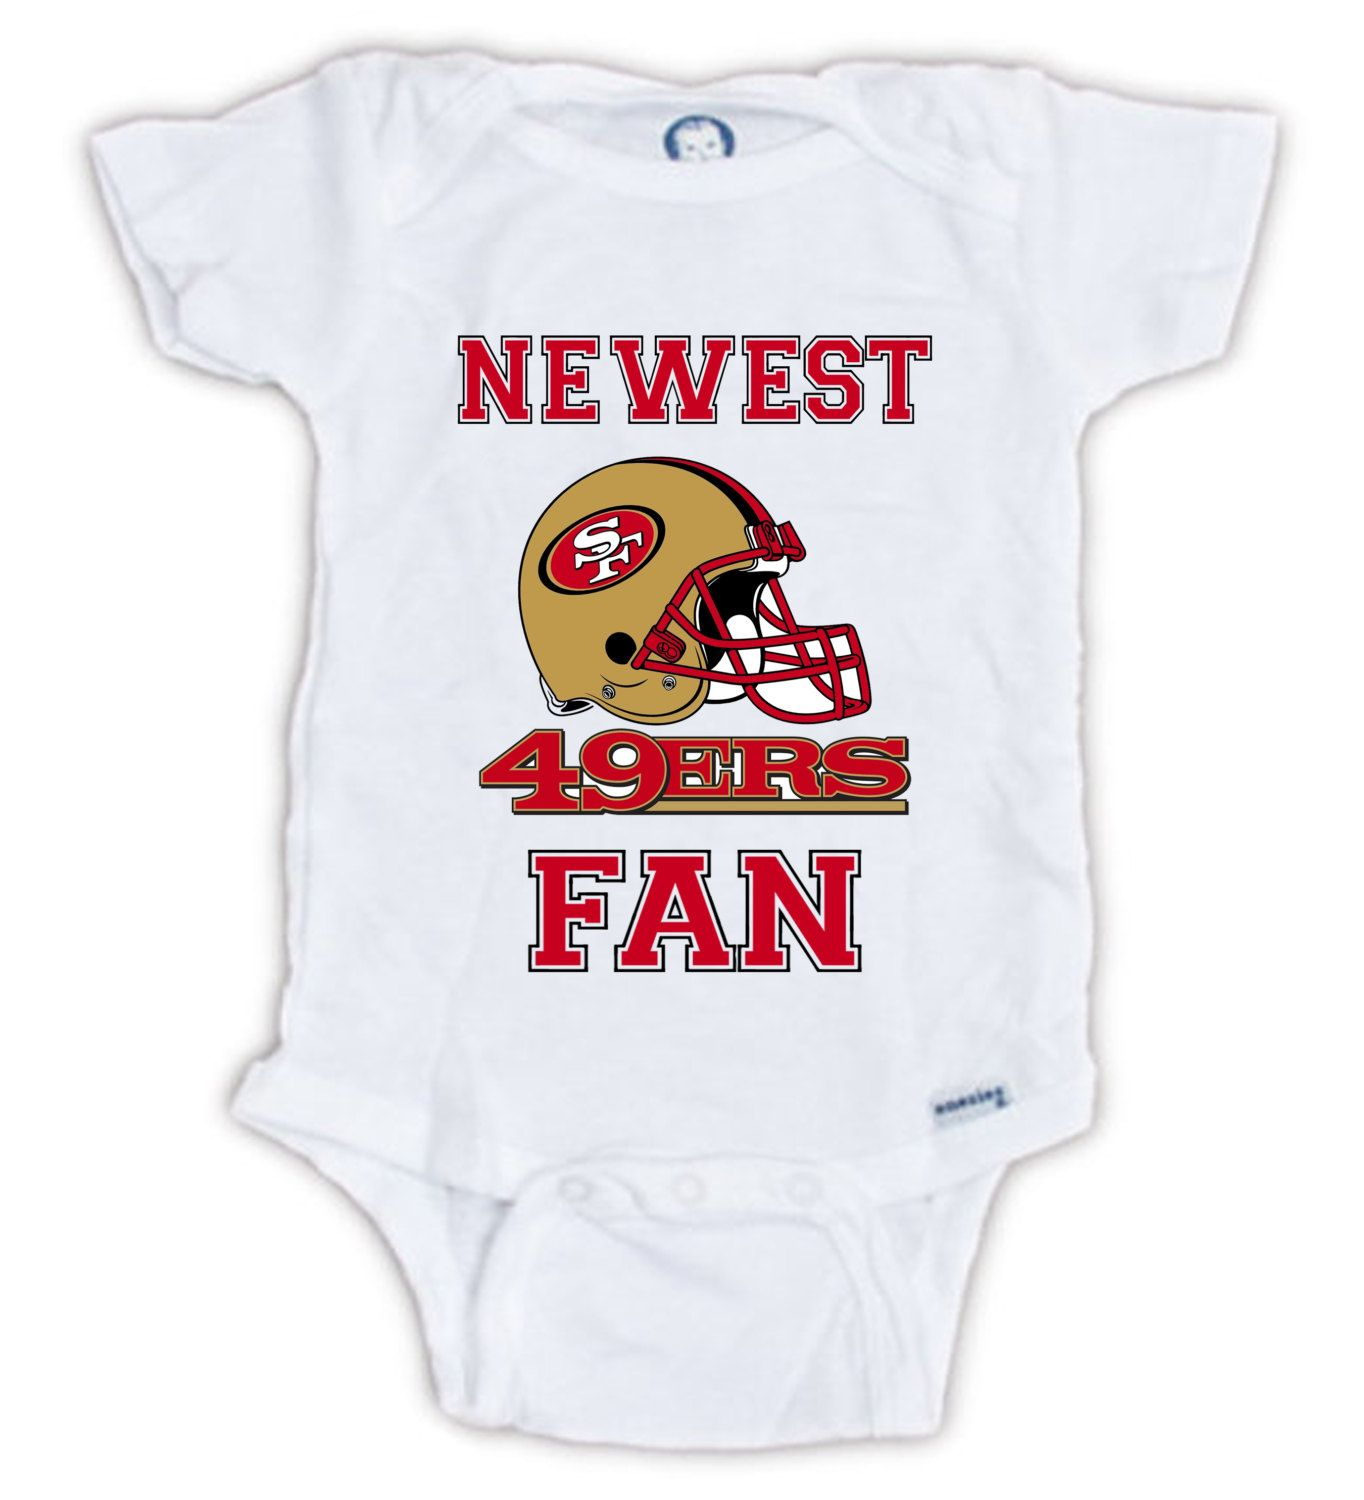 877075851c8 San Francisco 49ERS FAN Baby Onesie, Baby Bodysuit, Football Onesie, Great  Baby Shower Gift, Mother's Day, Father's Day, Sportsfan by JujuApparel on  Etsy